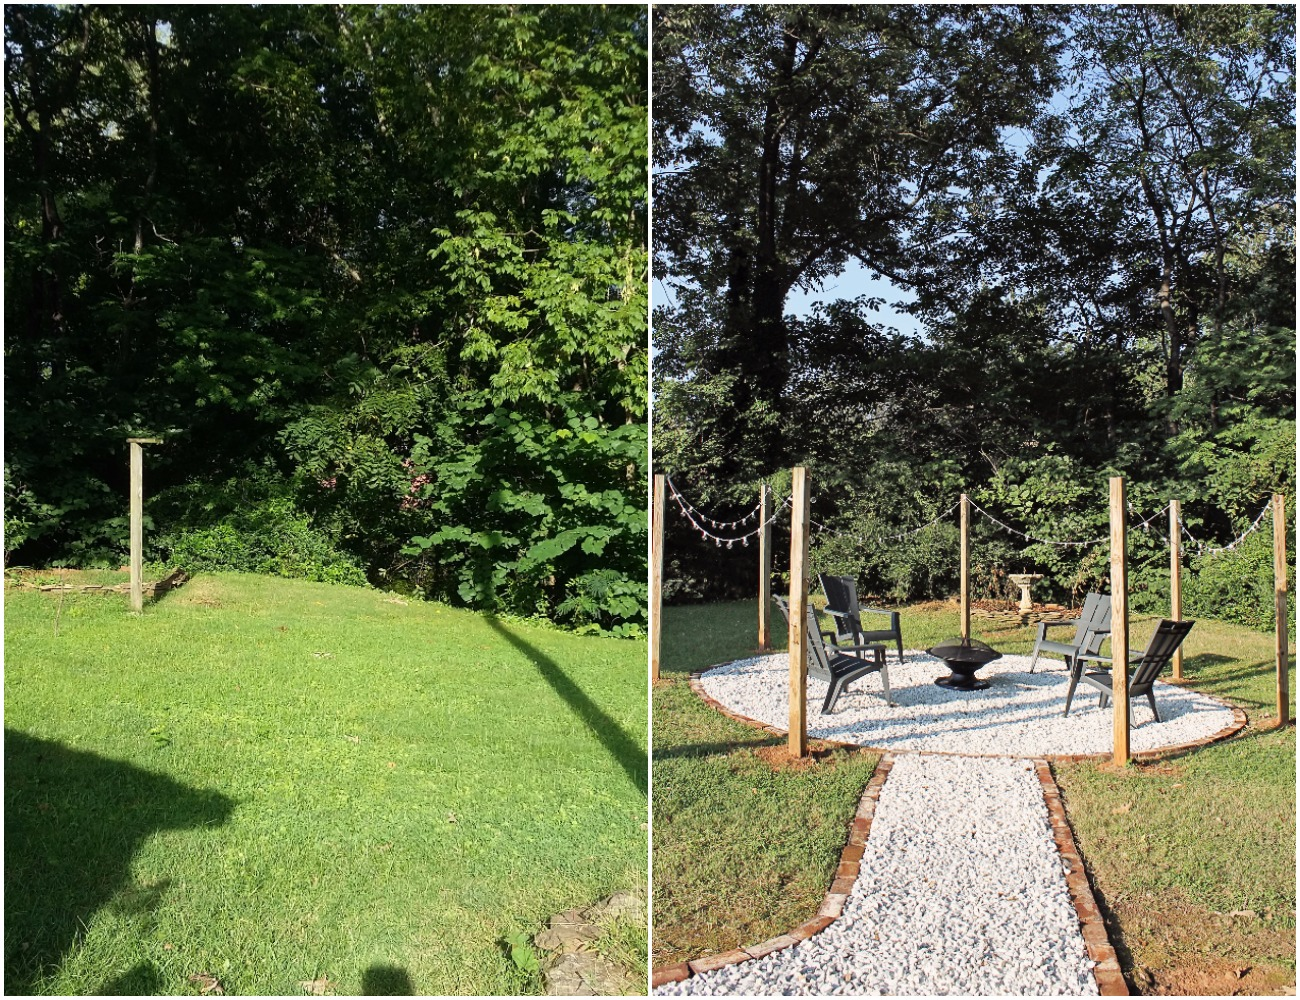 House Flipping Before and Afters - Curb Appeal and Backyard on a Budget DIY (7).jpg